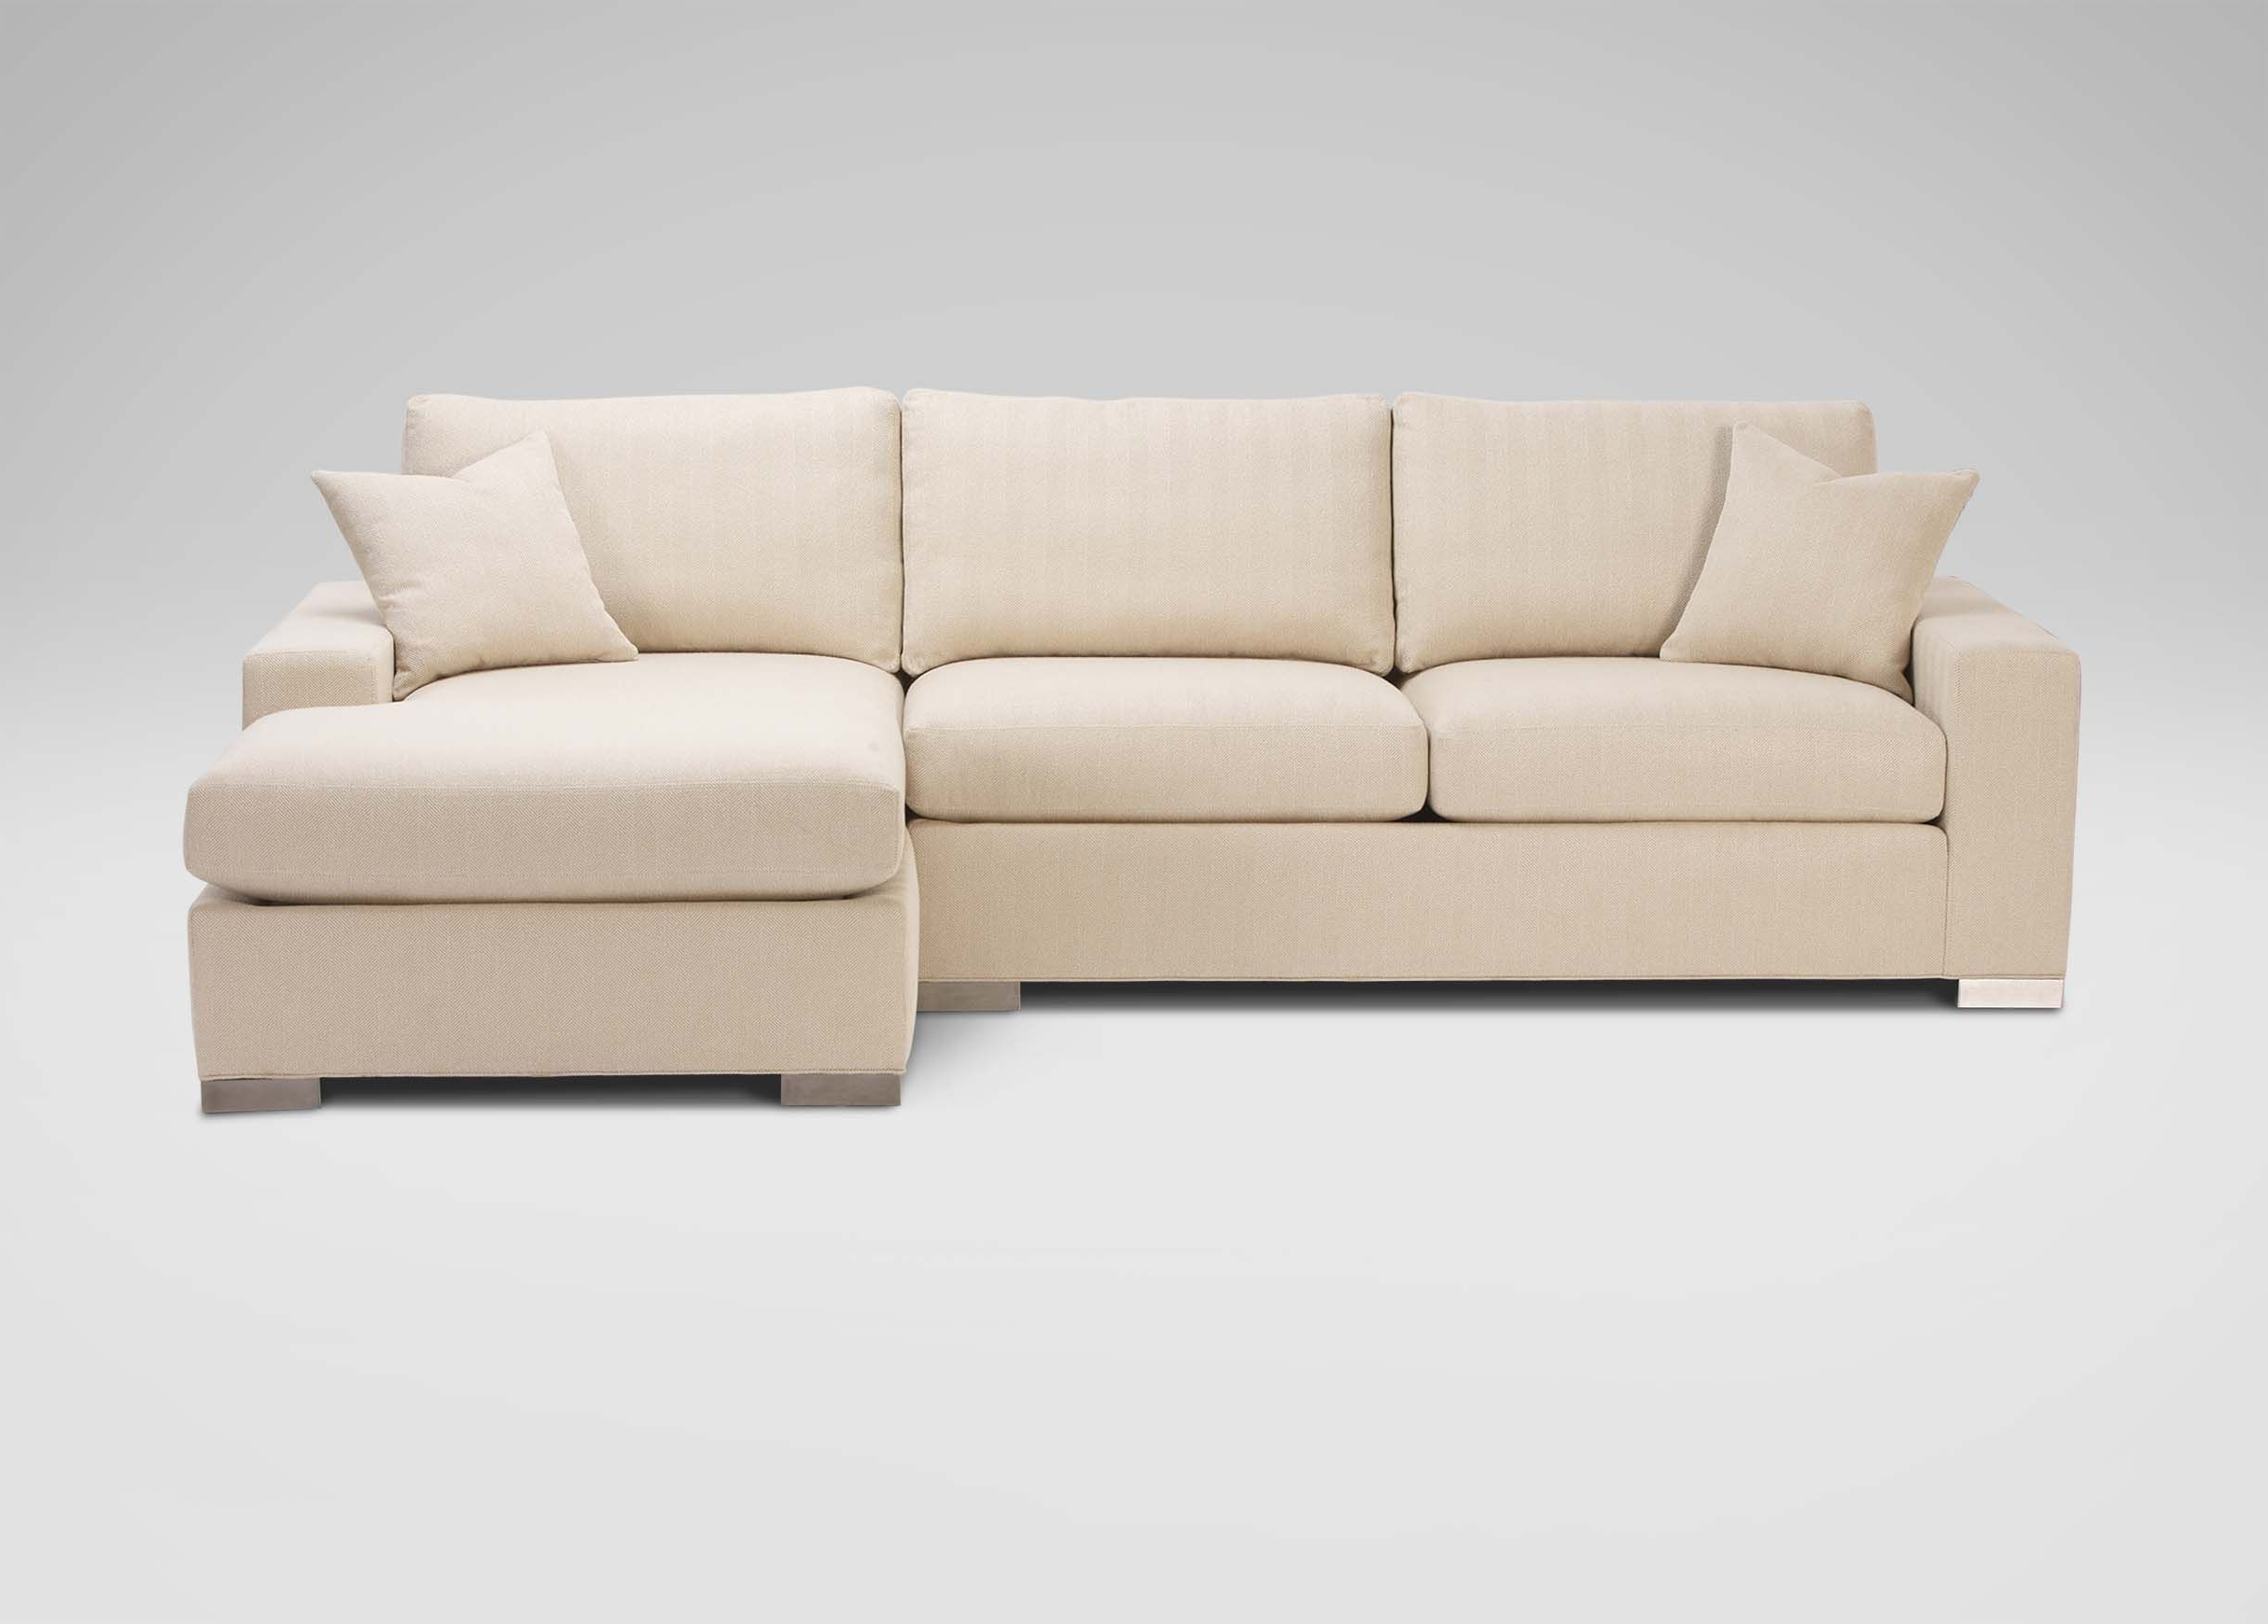 Latest Ethan Allen Retreat Sectional – Trend Of Home Design Bedroom Bathroom With Sectional Sofas At Ethan Allen (View 8 of 15)